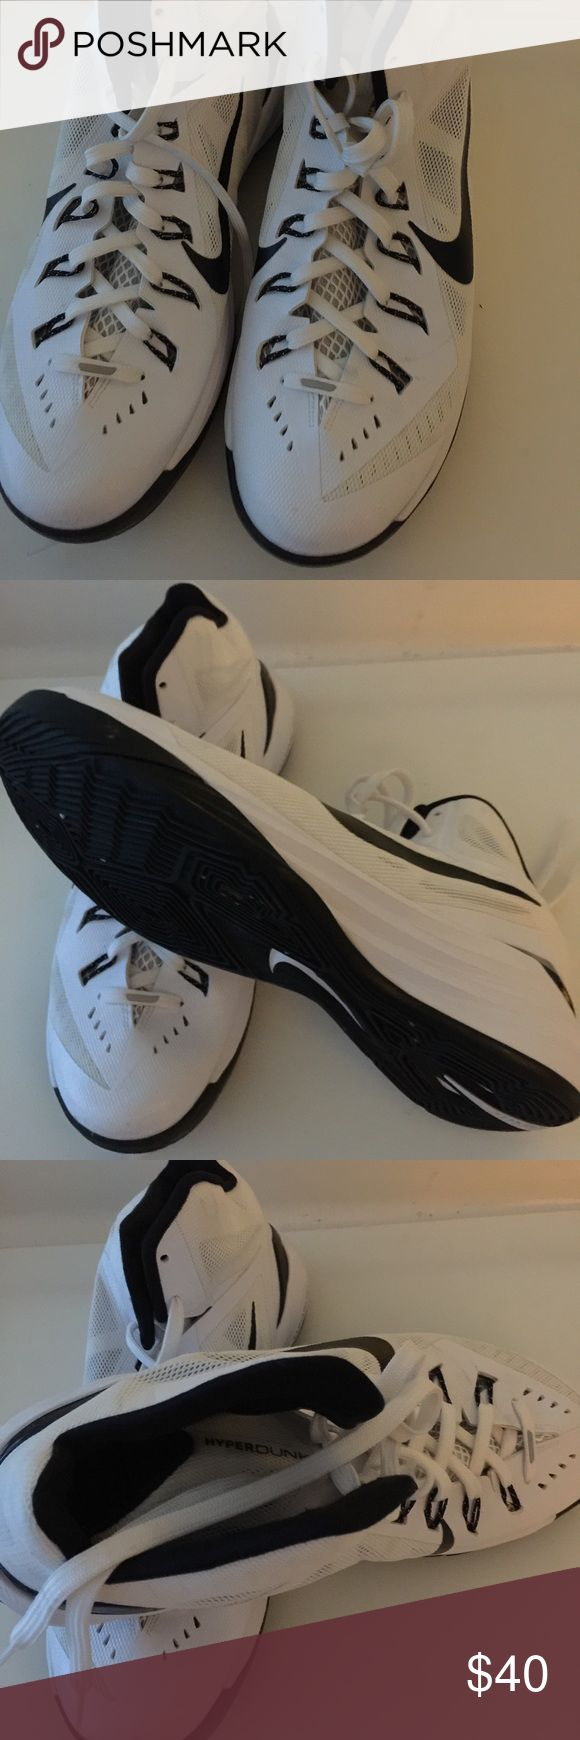 ‼️Closet Clearance ‼️Nike Hyperdunk TB Basketball ‼️Closet Clearance ‼️Nike Men's Hyperdunk 2014 TB Basketball Shoes White / Black 653483 -100 in almost New preowned condition. Size:11 Nike Shoes Sneakers